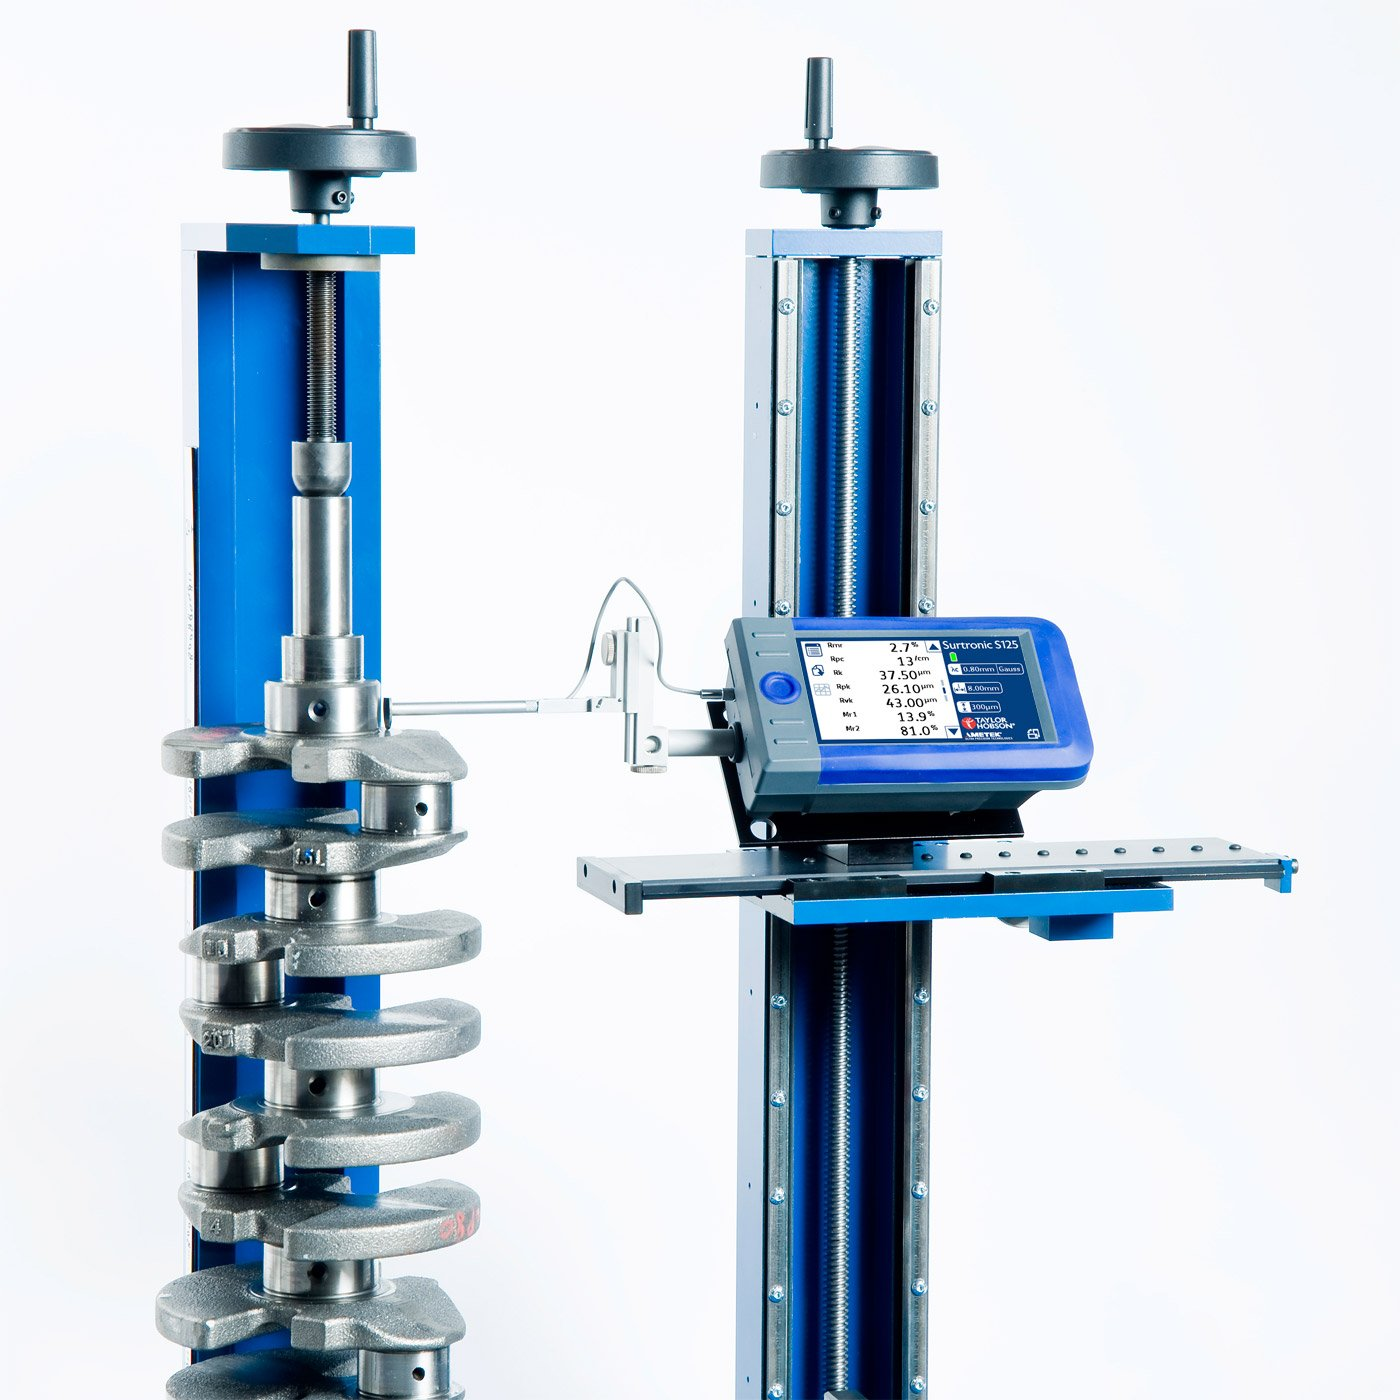 Surtronic s-100 surface roughness measurement equipment